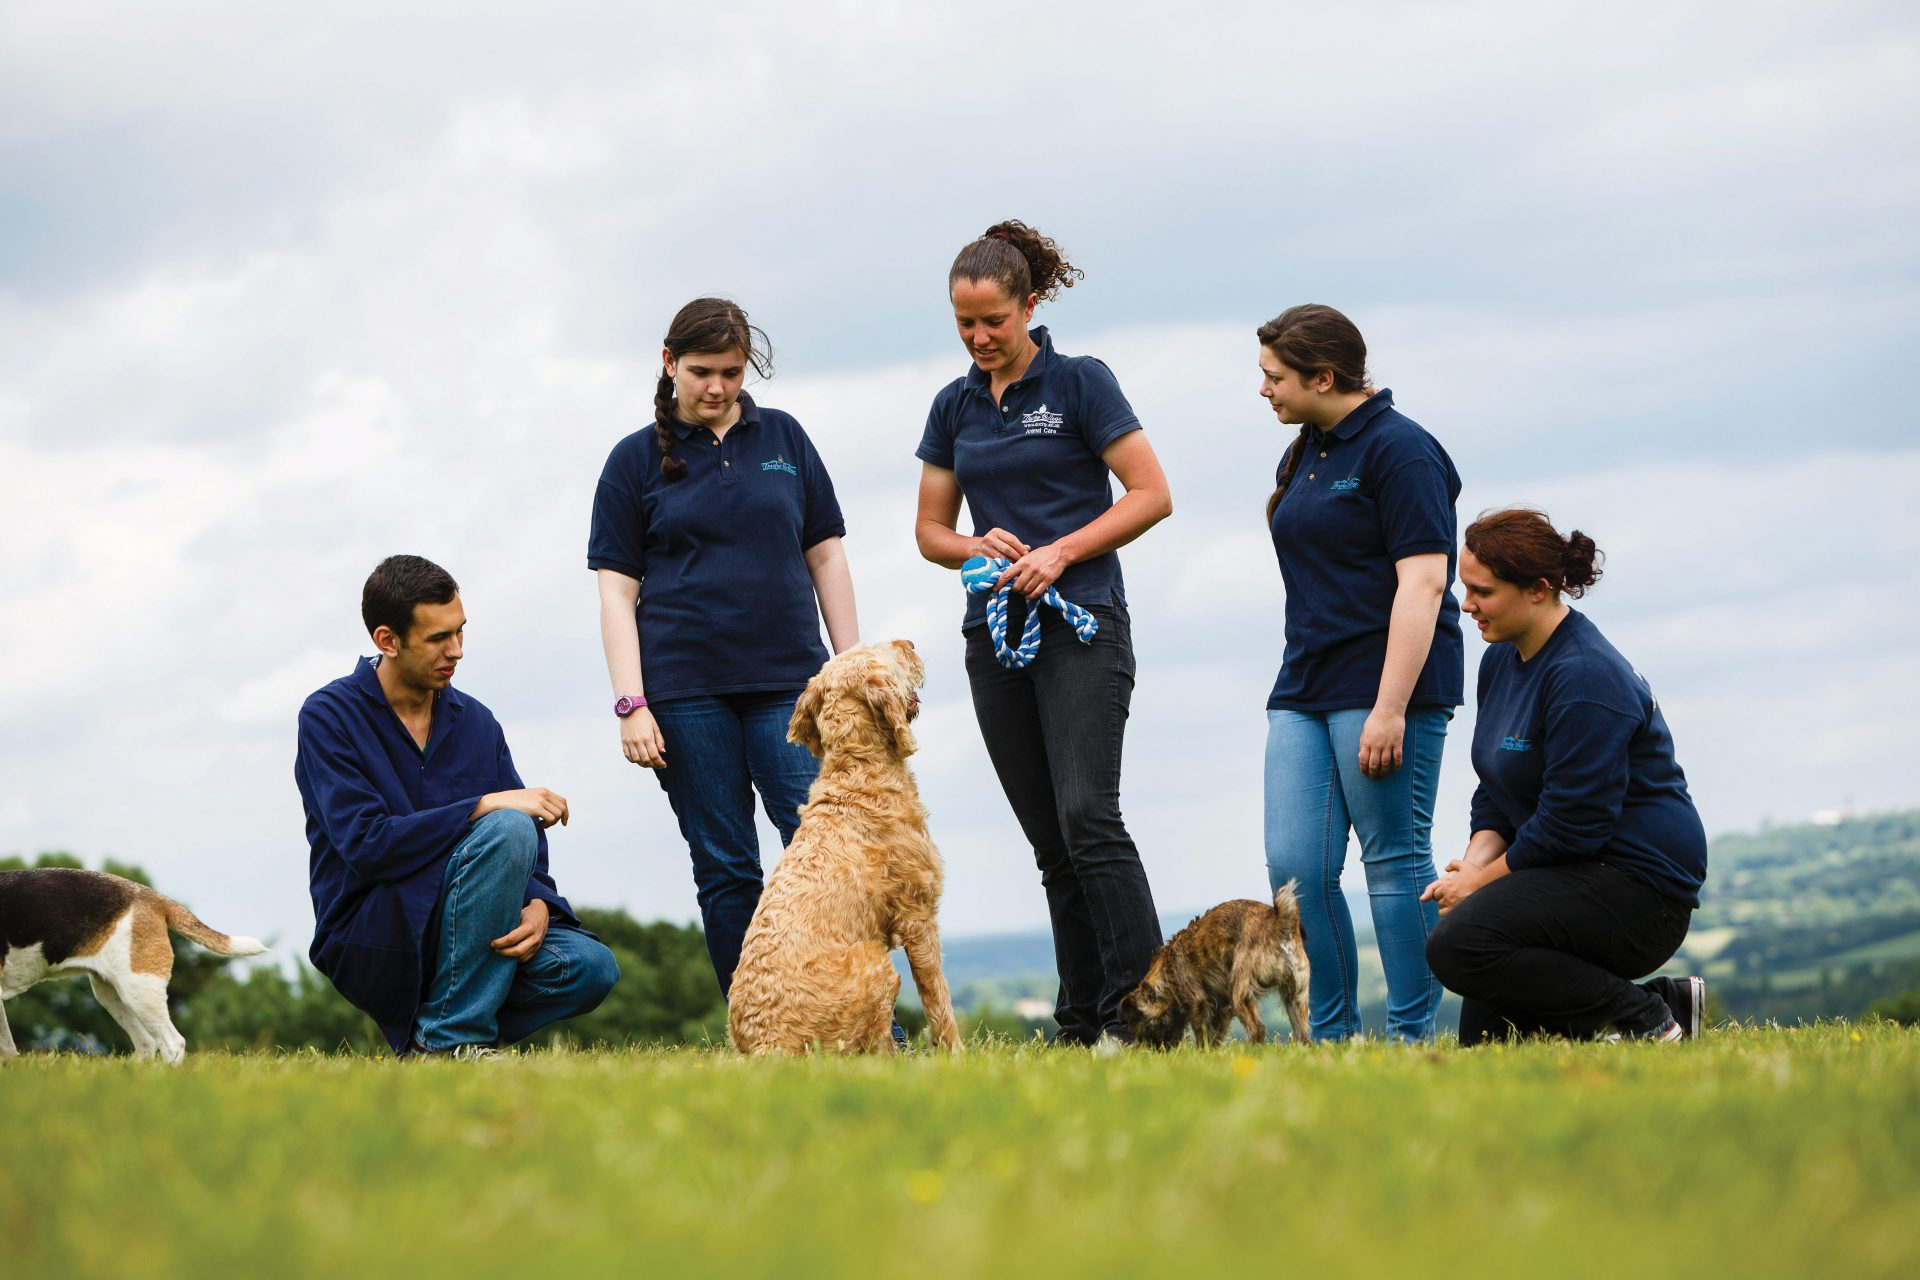 Animal Care Assistant, Plymouth Veterinary Hospital Groups, Estover